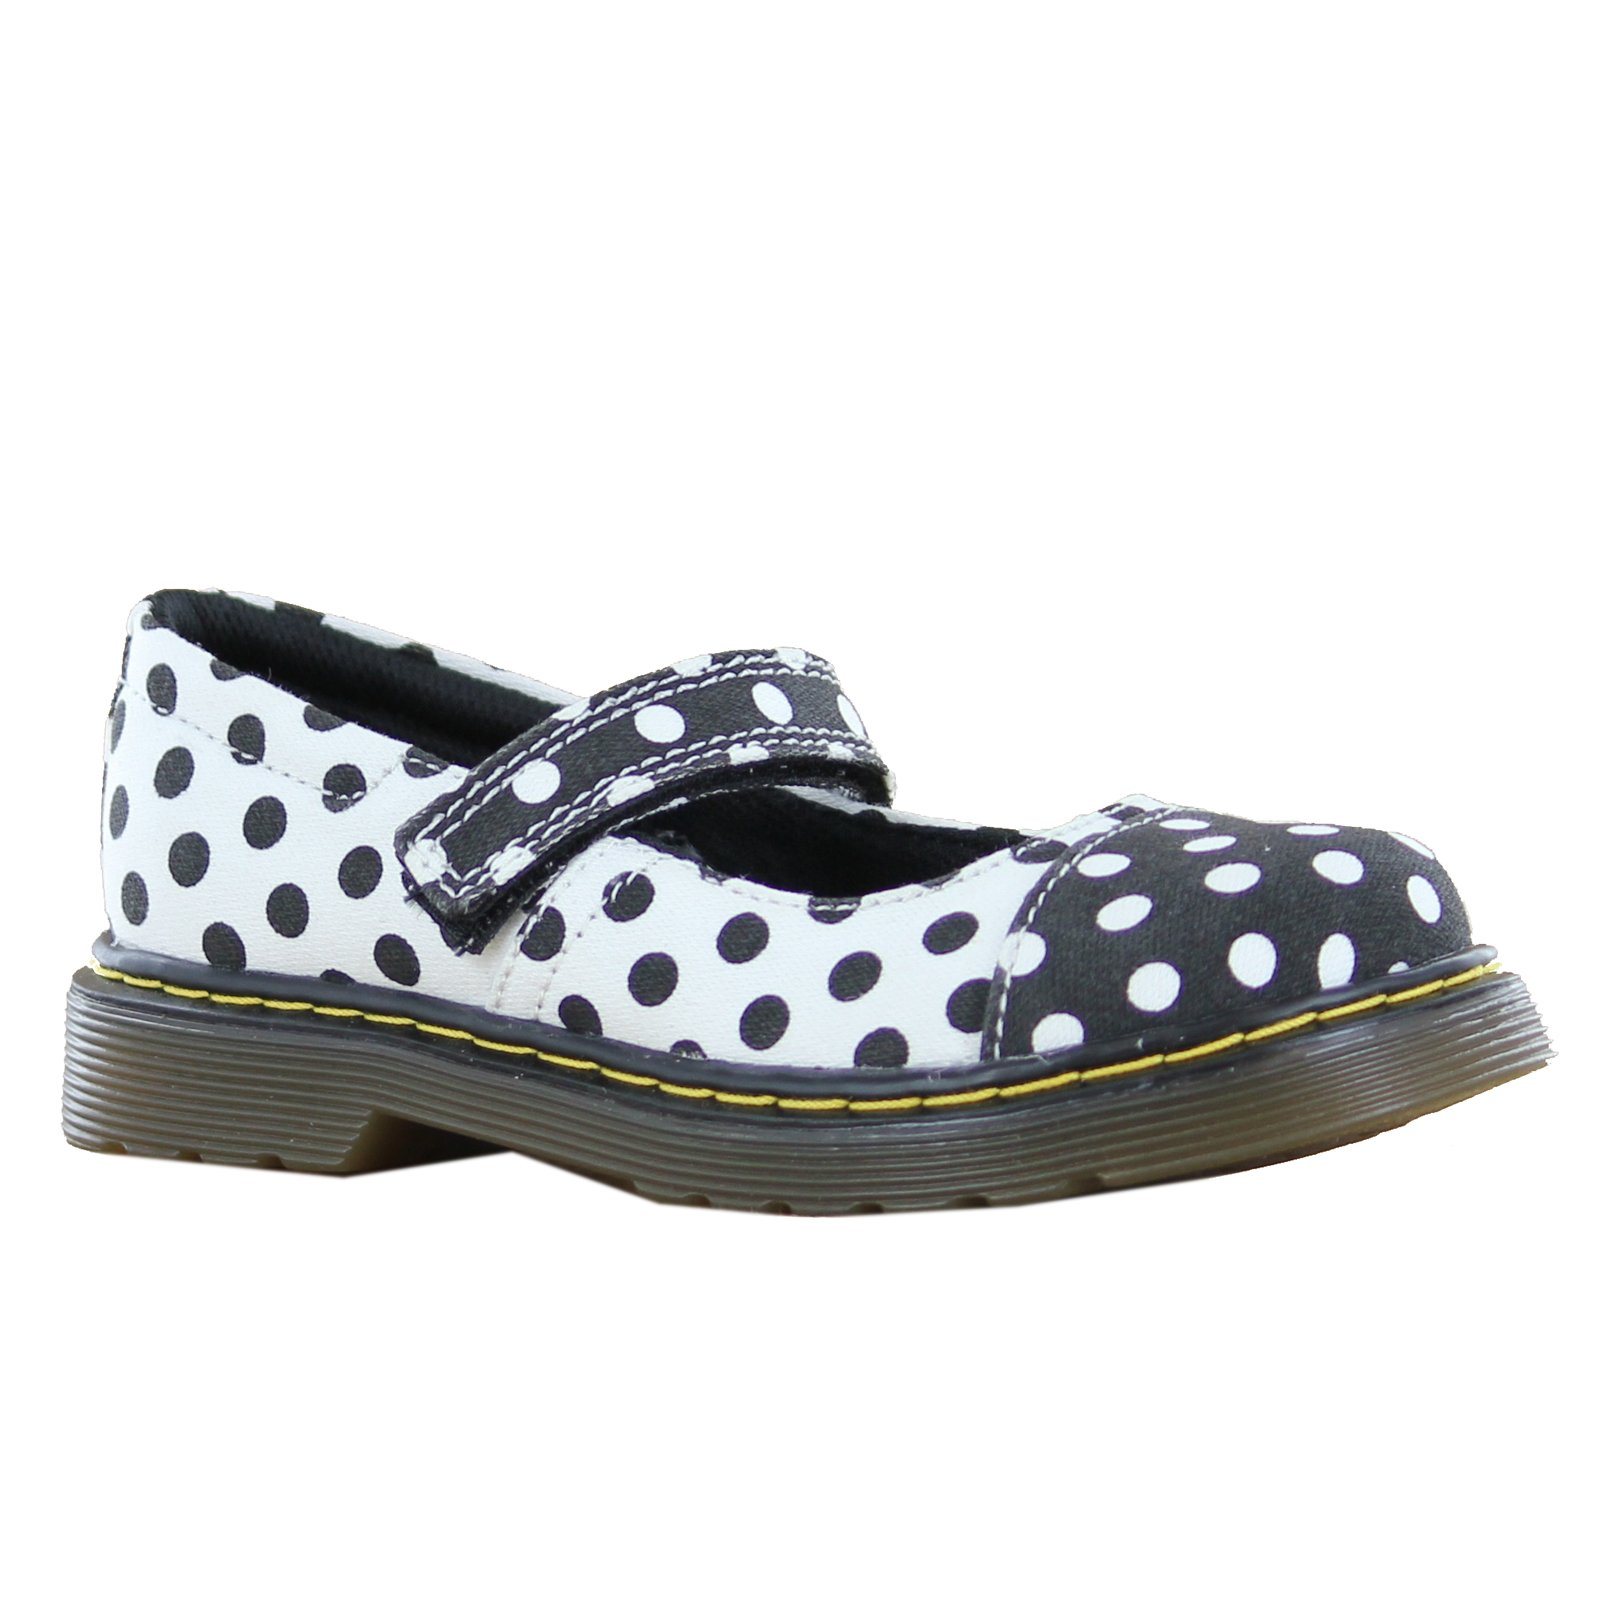 Dr. Martens Kid's Collection Girl's Bijou Toe Cap Mary Jane (Little Kid) Black+White/White+Black Dots Fine Canvas Flat 13 UK (1 US Little Kid) M by Dr. Martens (Image #1)